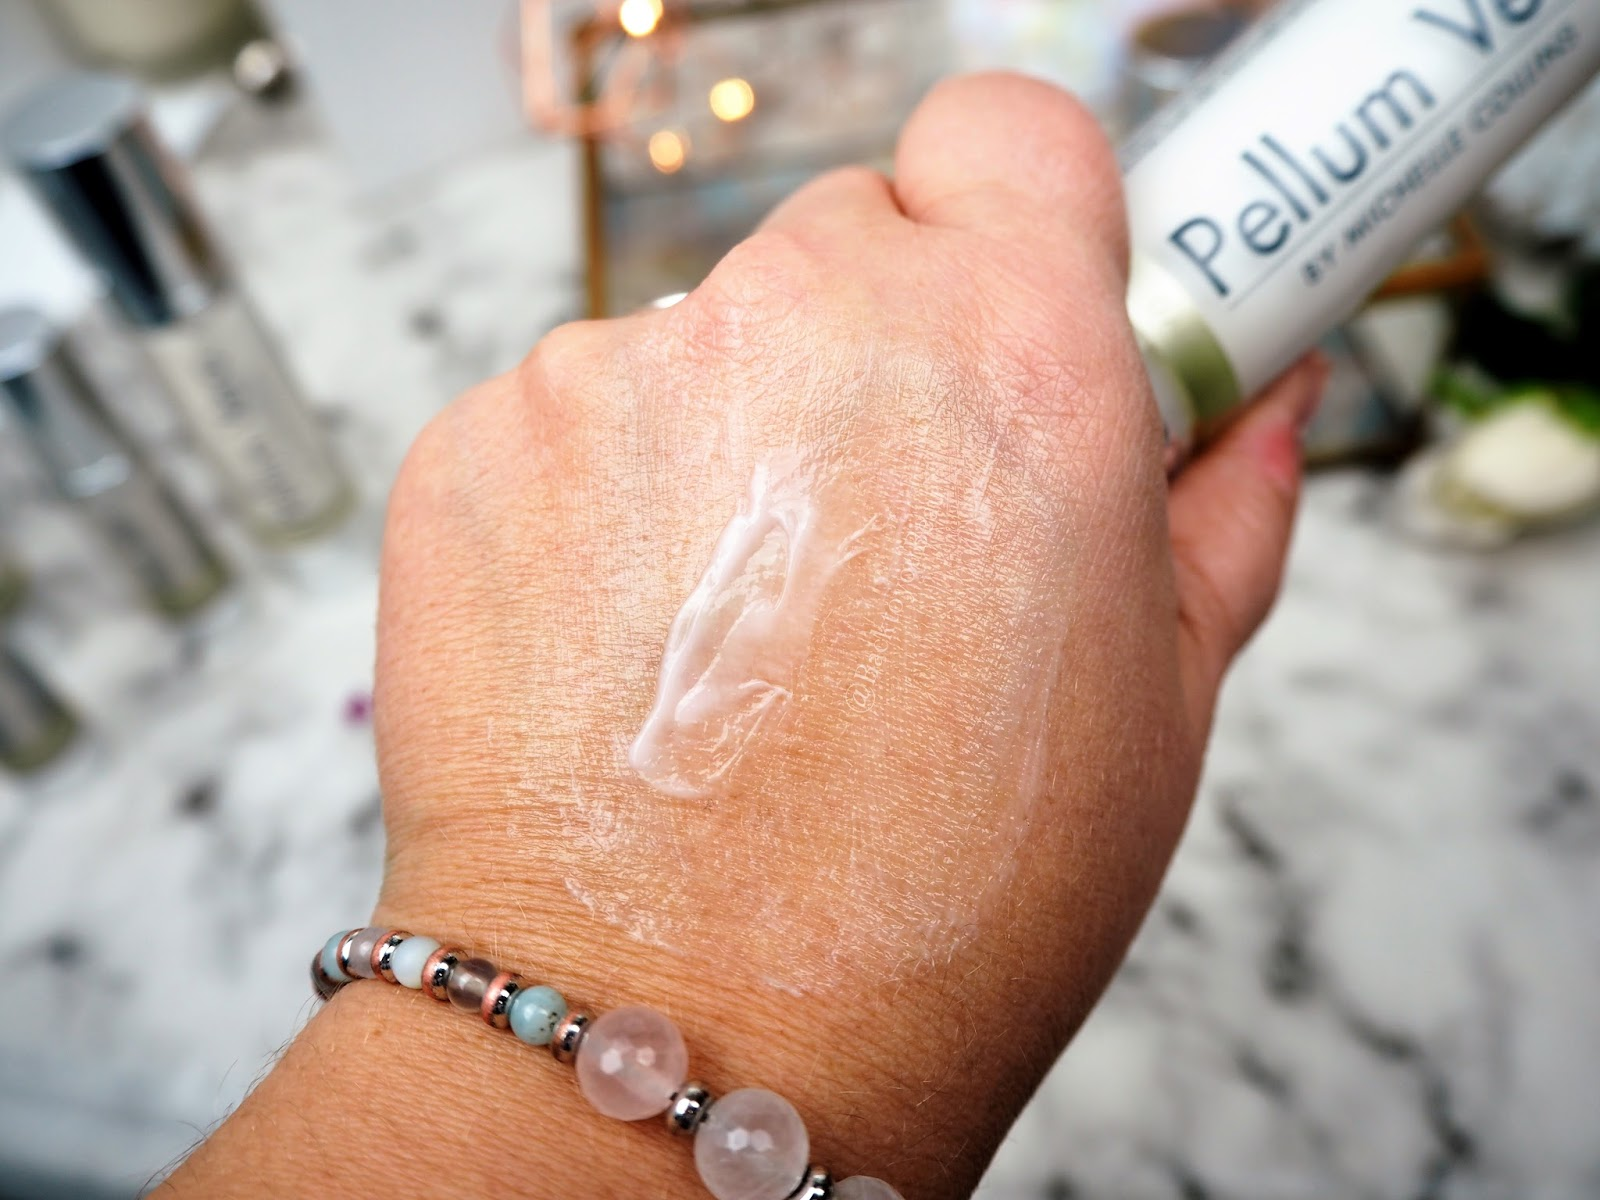 Pellum Vero Day Cream Swatch